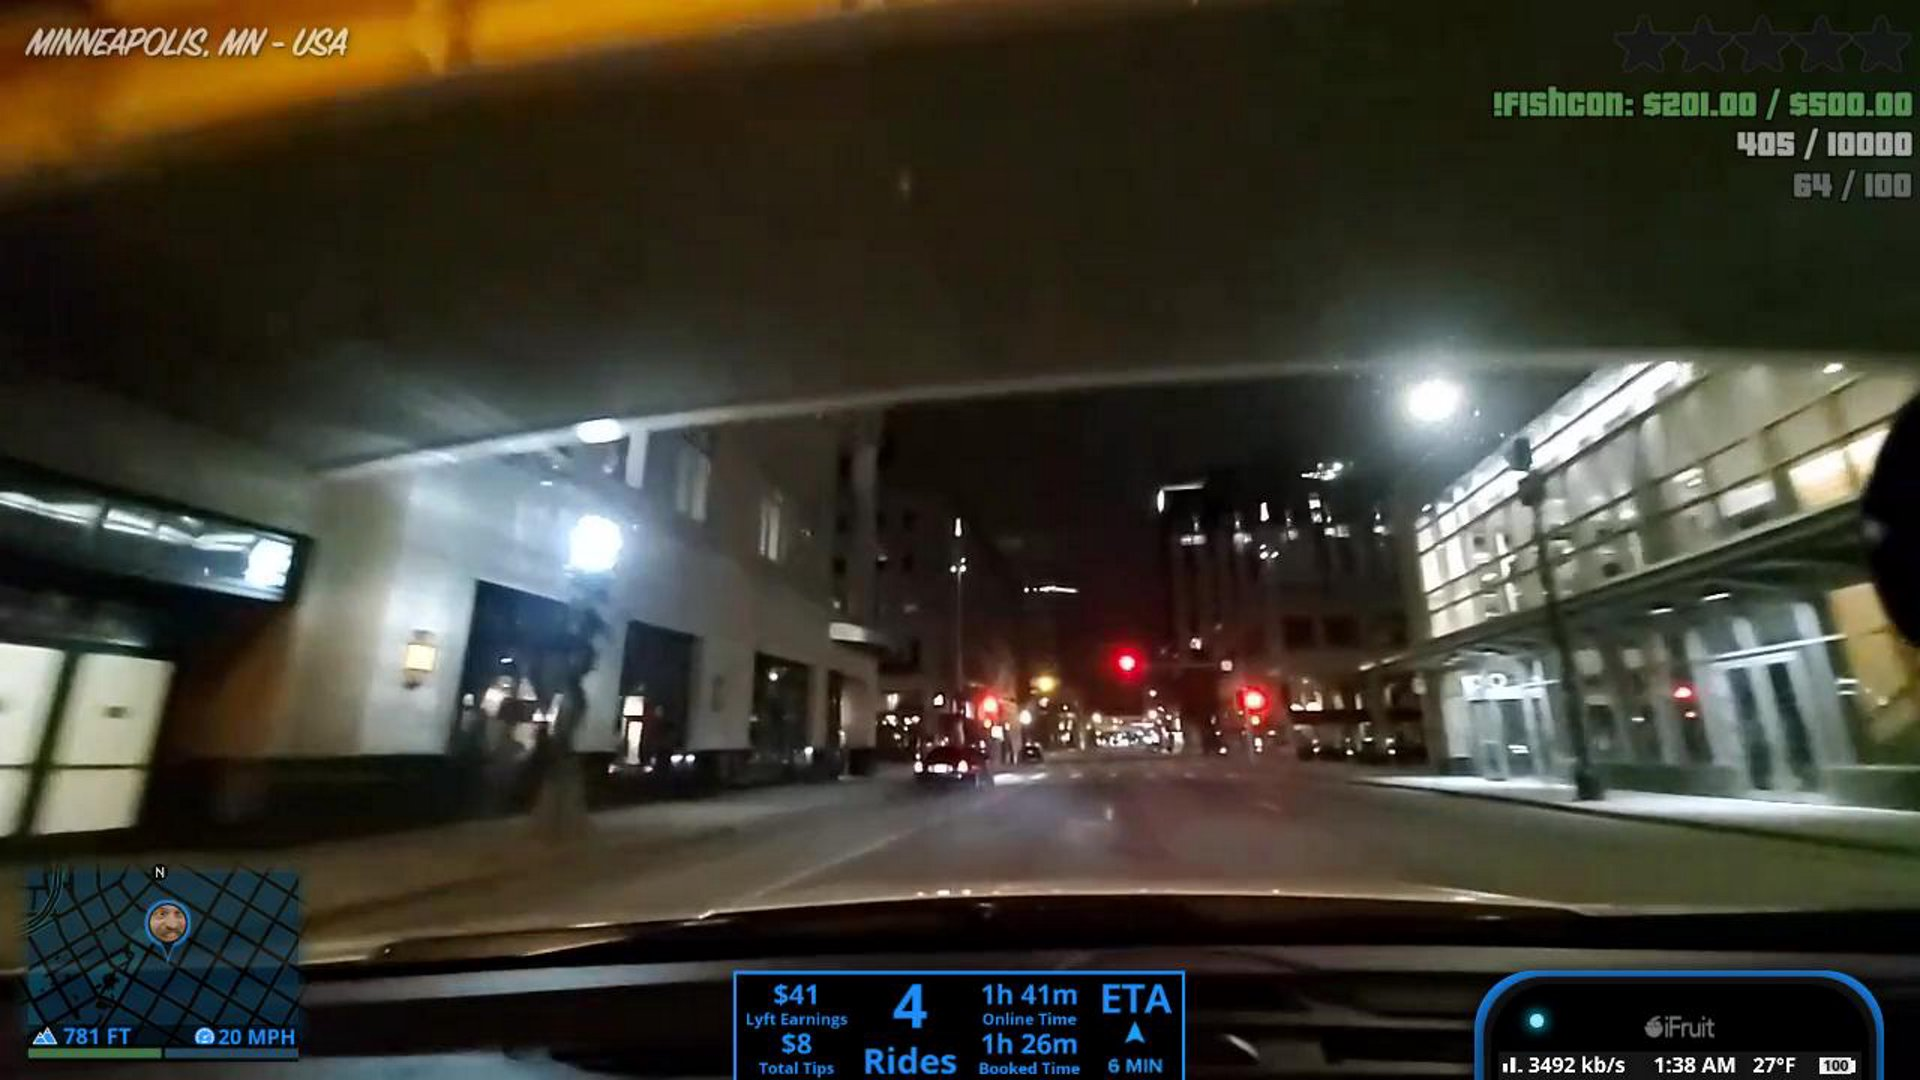 rideshare-roadcam-pov-mn-usa-fishcon-plunges-help-just-chatting-0259-https-t-co-xwd0qas8gz-https-t-co-nj29gwvlcy